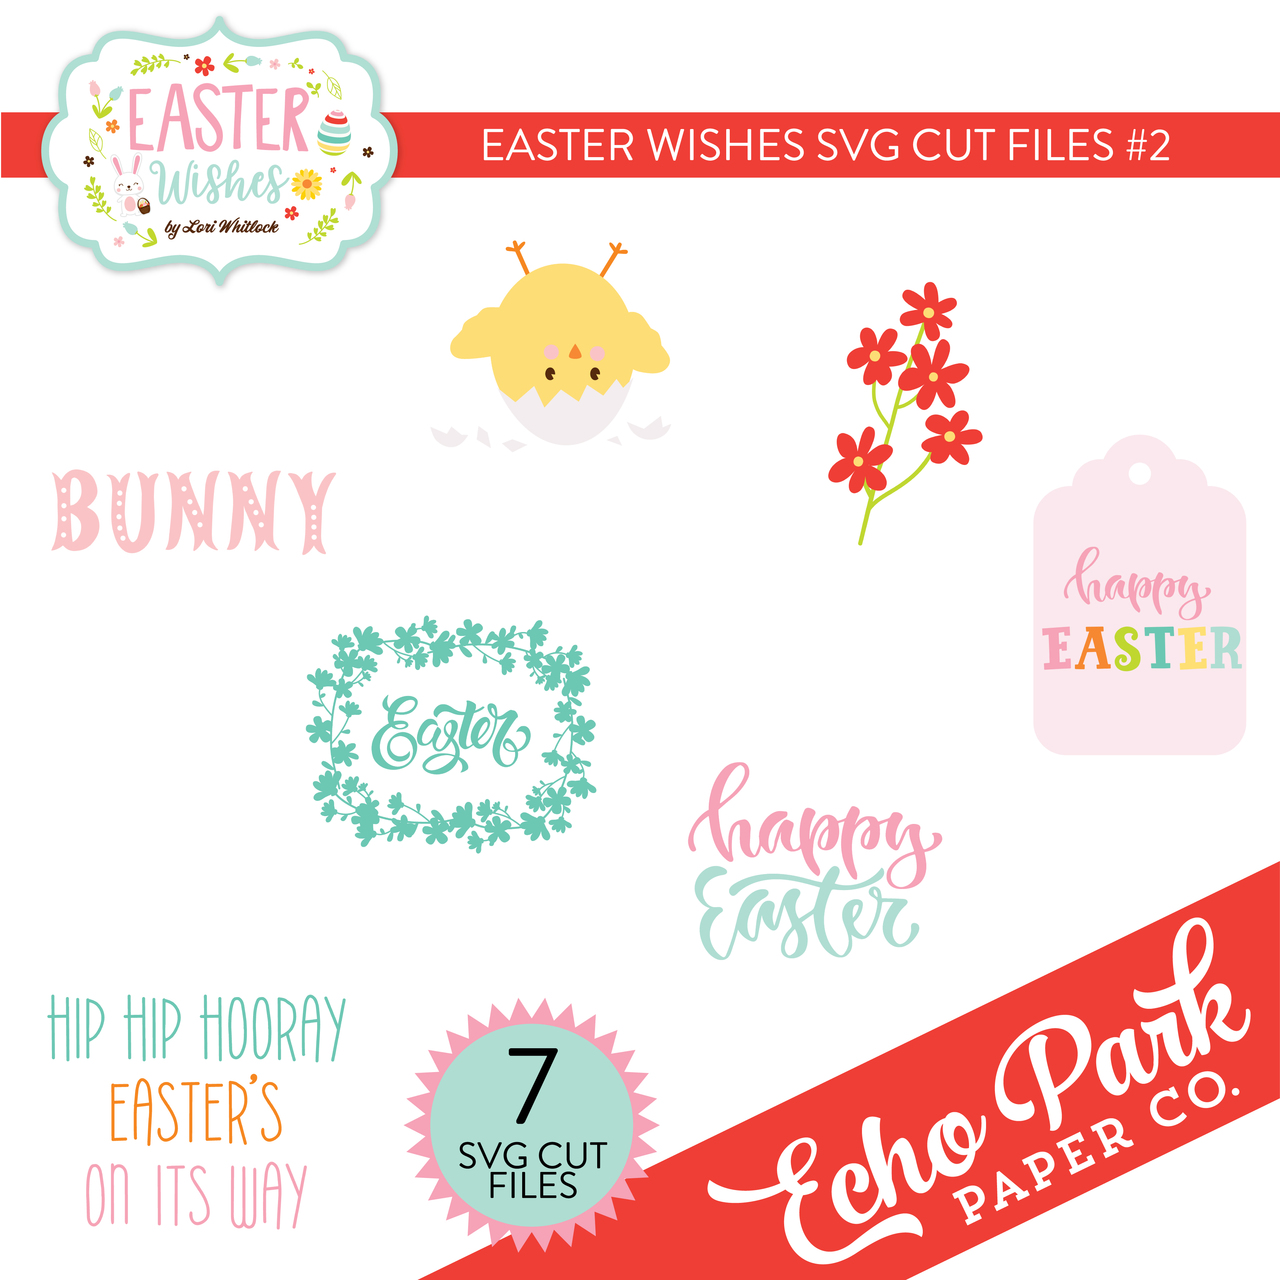 Easter Wishes SVG Cut Files #2